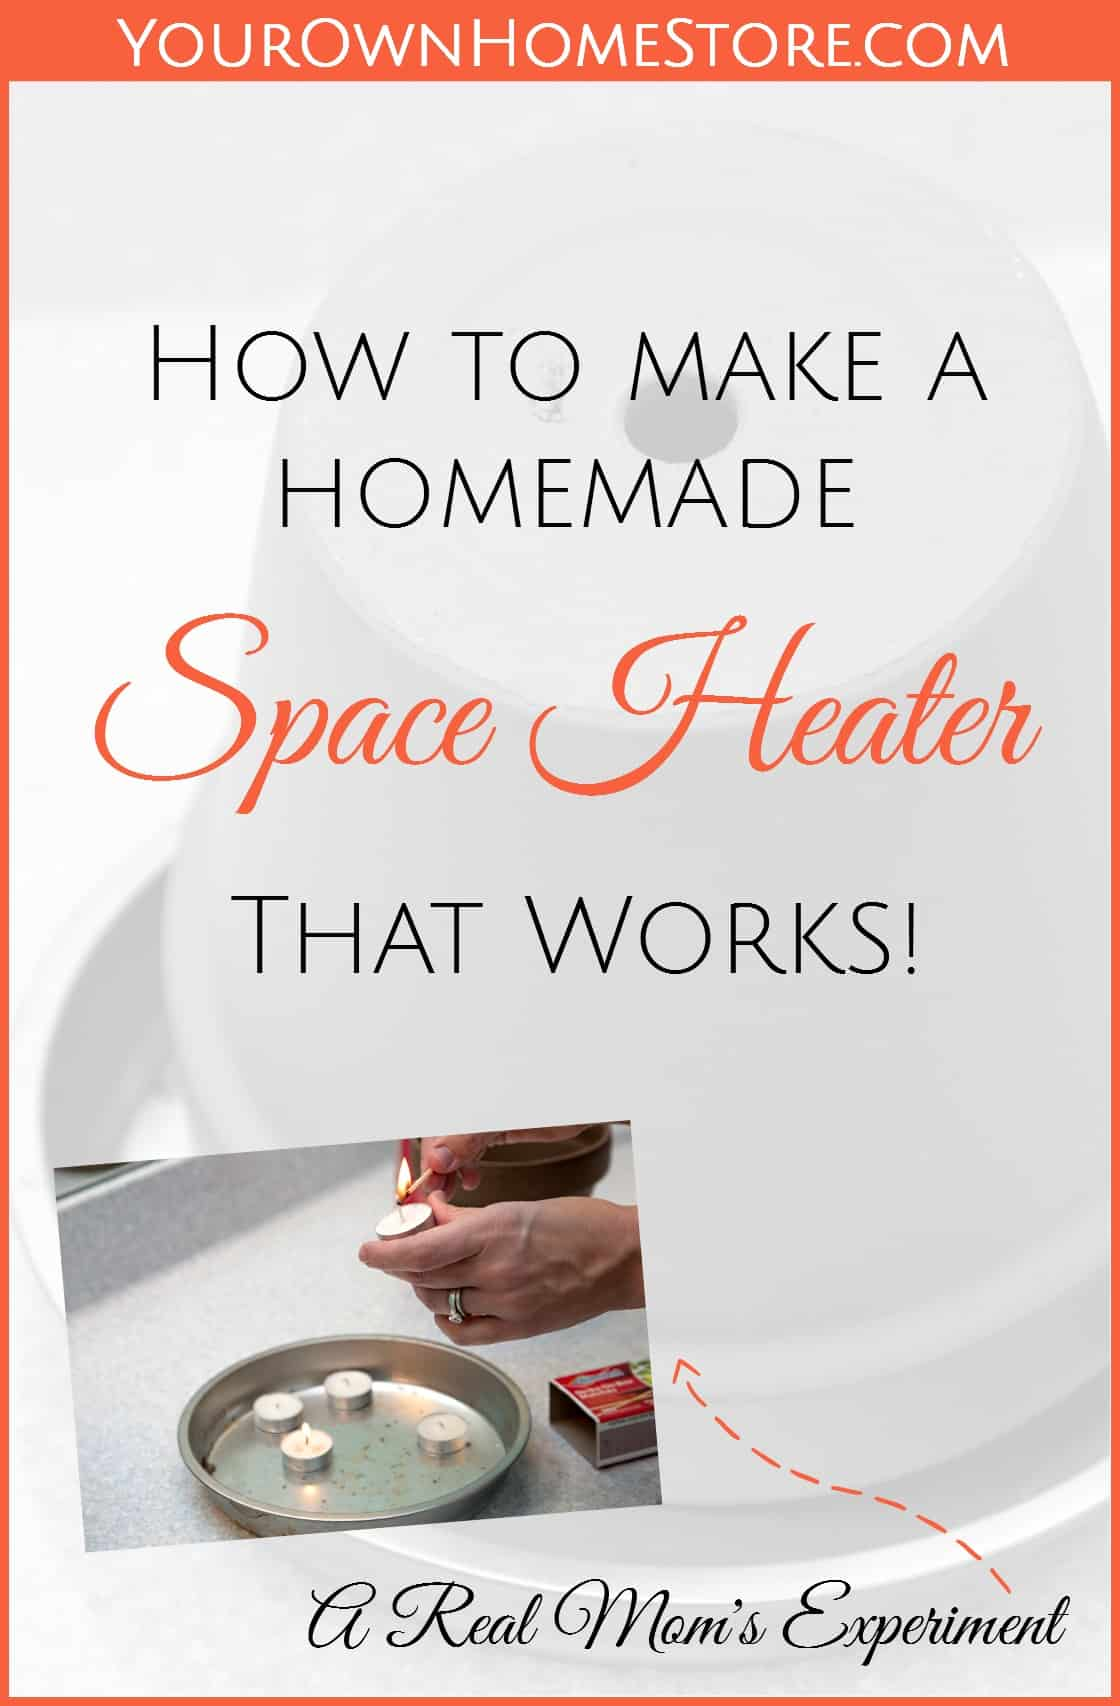 DIY Around the House: A Homemade Space Heater That Works!